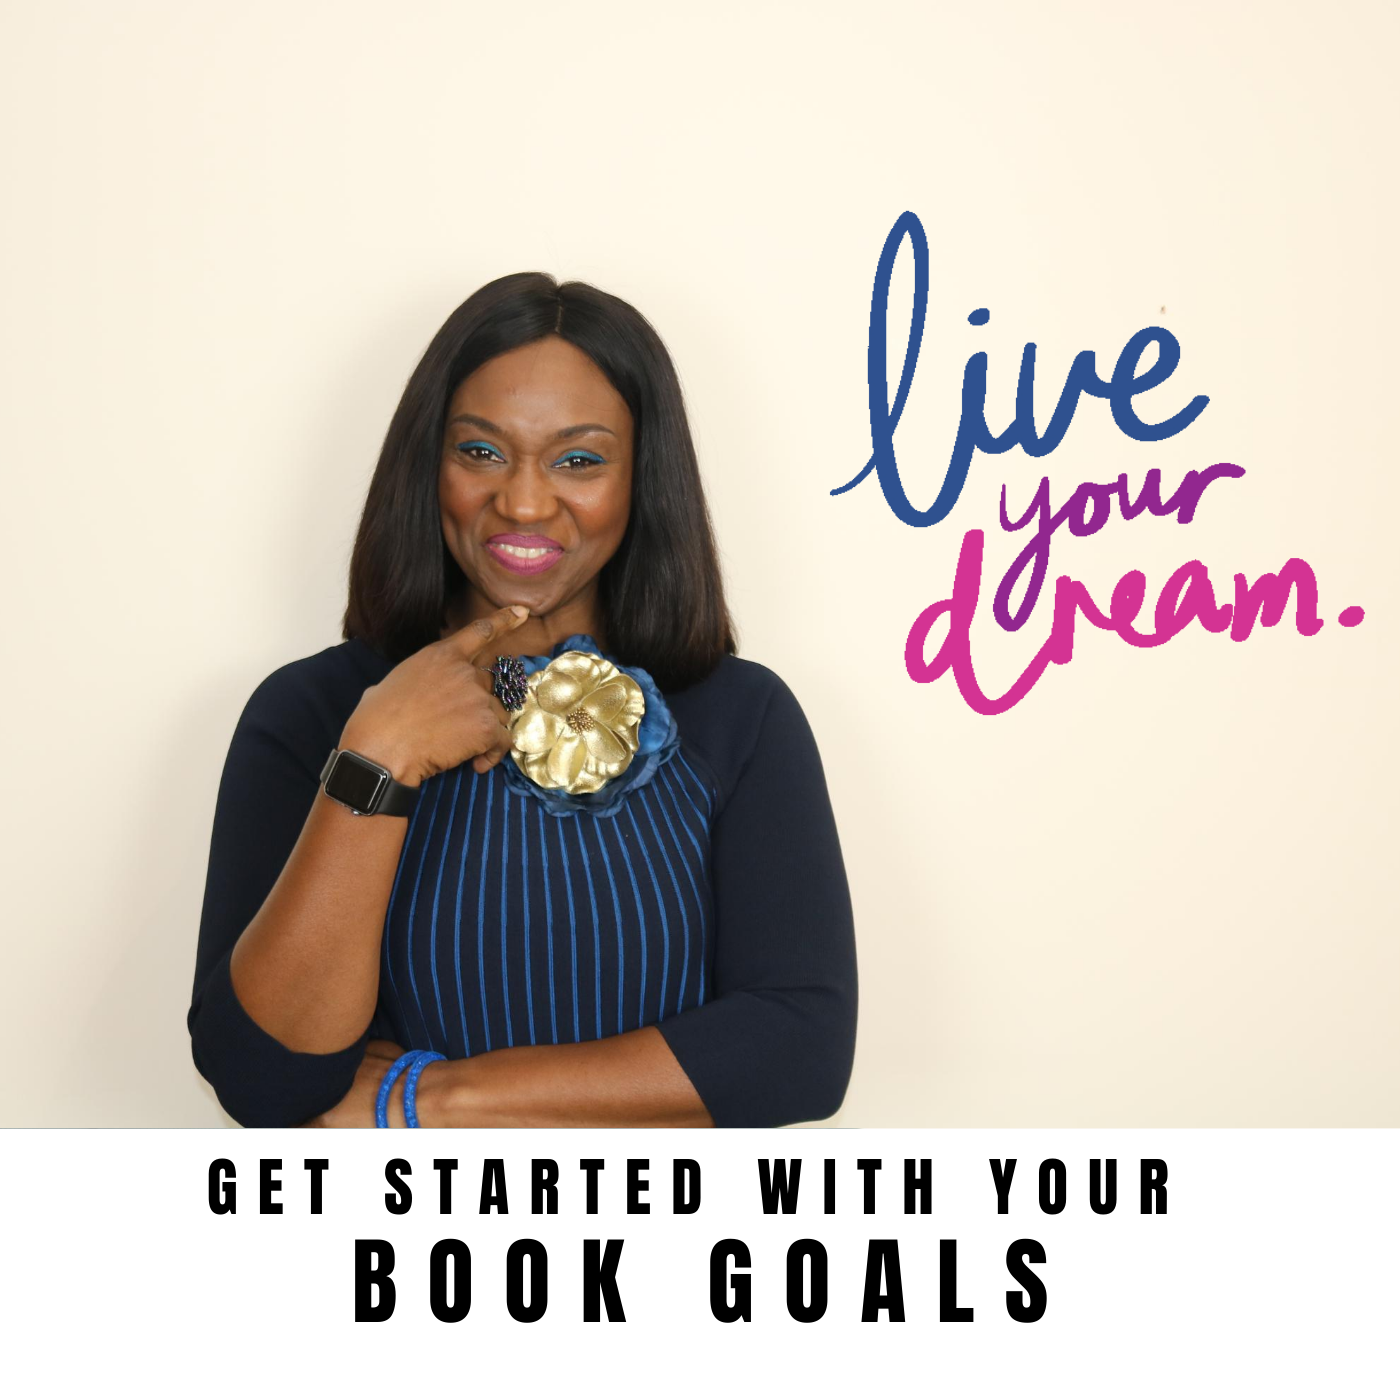 Get Started With Your Book Goals